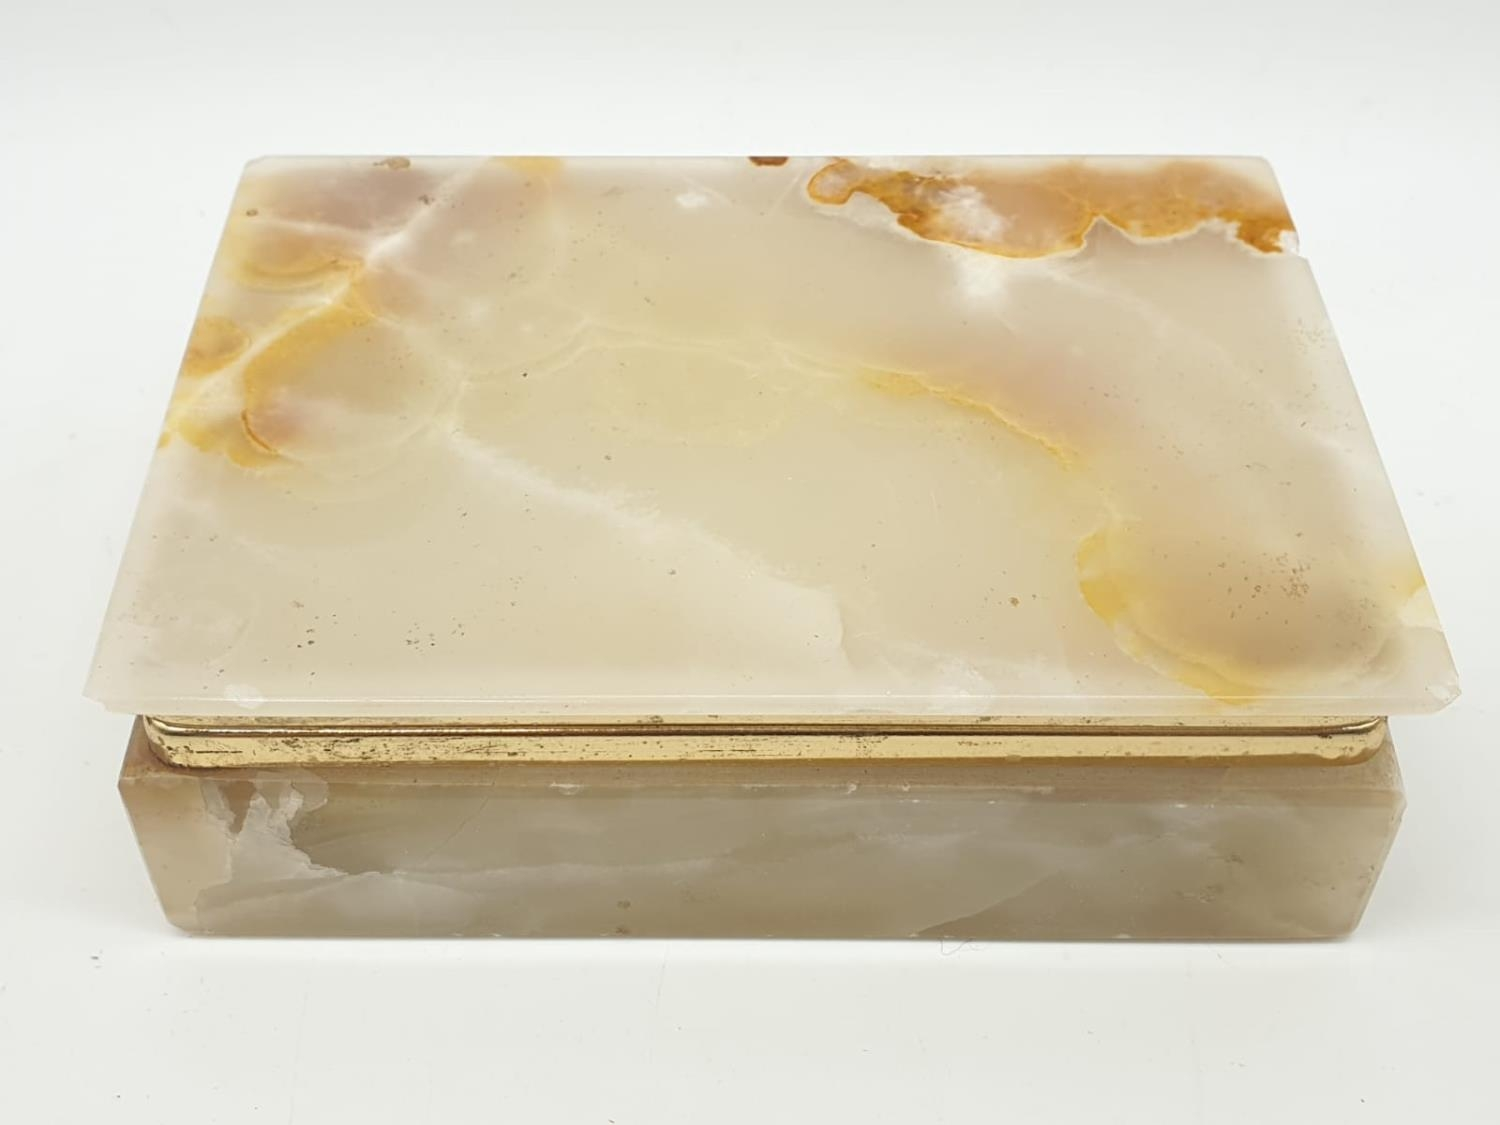 An onyx cigarette box, lighter and 2 onyx ash trays (small chip on cigarette box lid). - Image 3 of 16